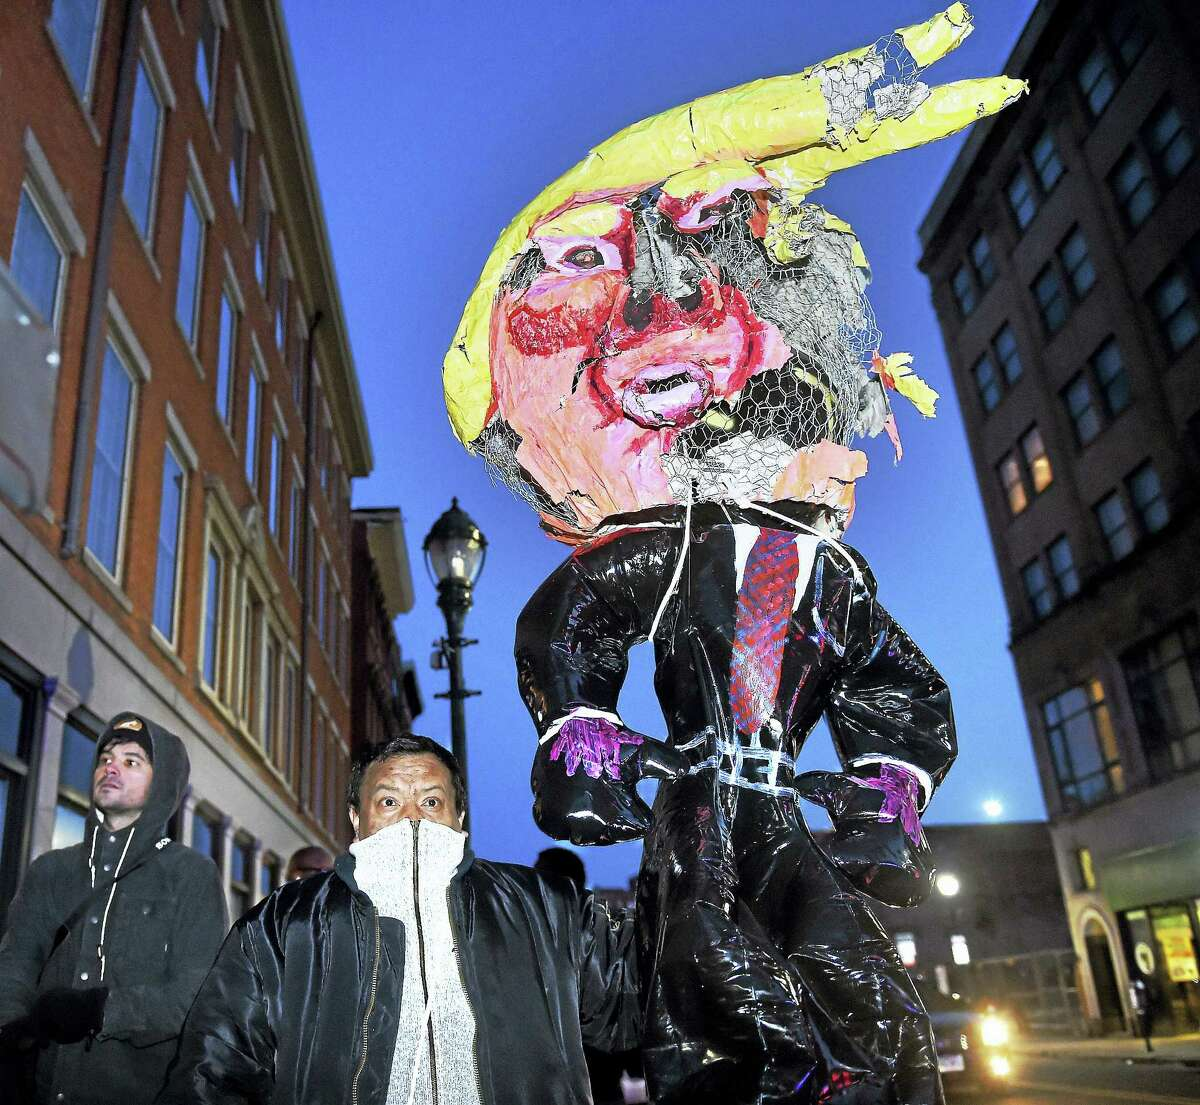 Edgar Sandoval of New Haven carries an effigy of President Donald Trump during a protest against federal immigration policy on Church Street in New Haven last week. The protest temporarily closed Route 34.